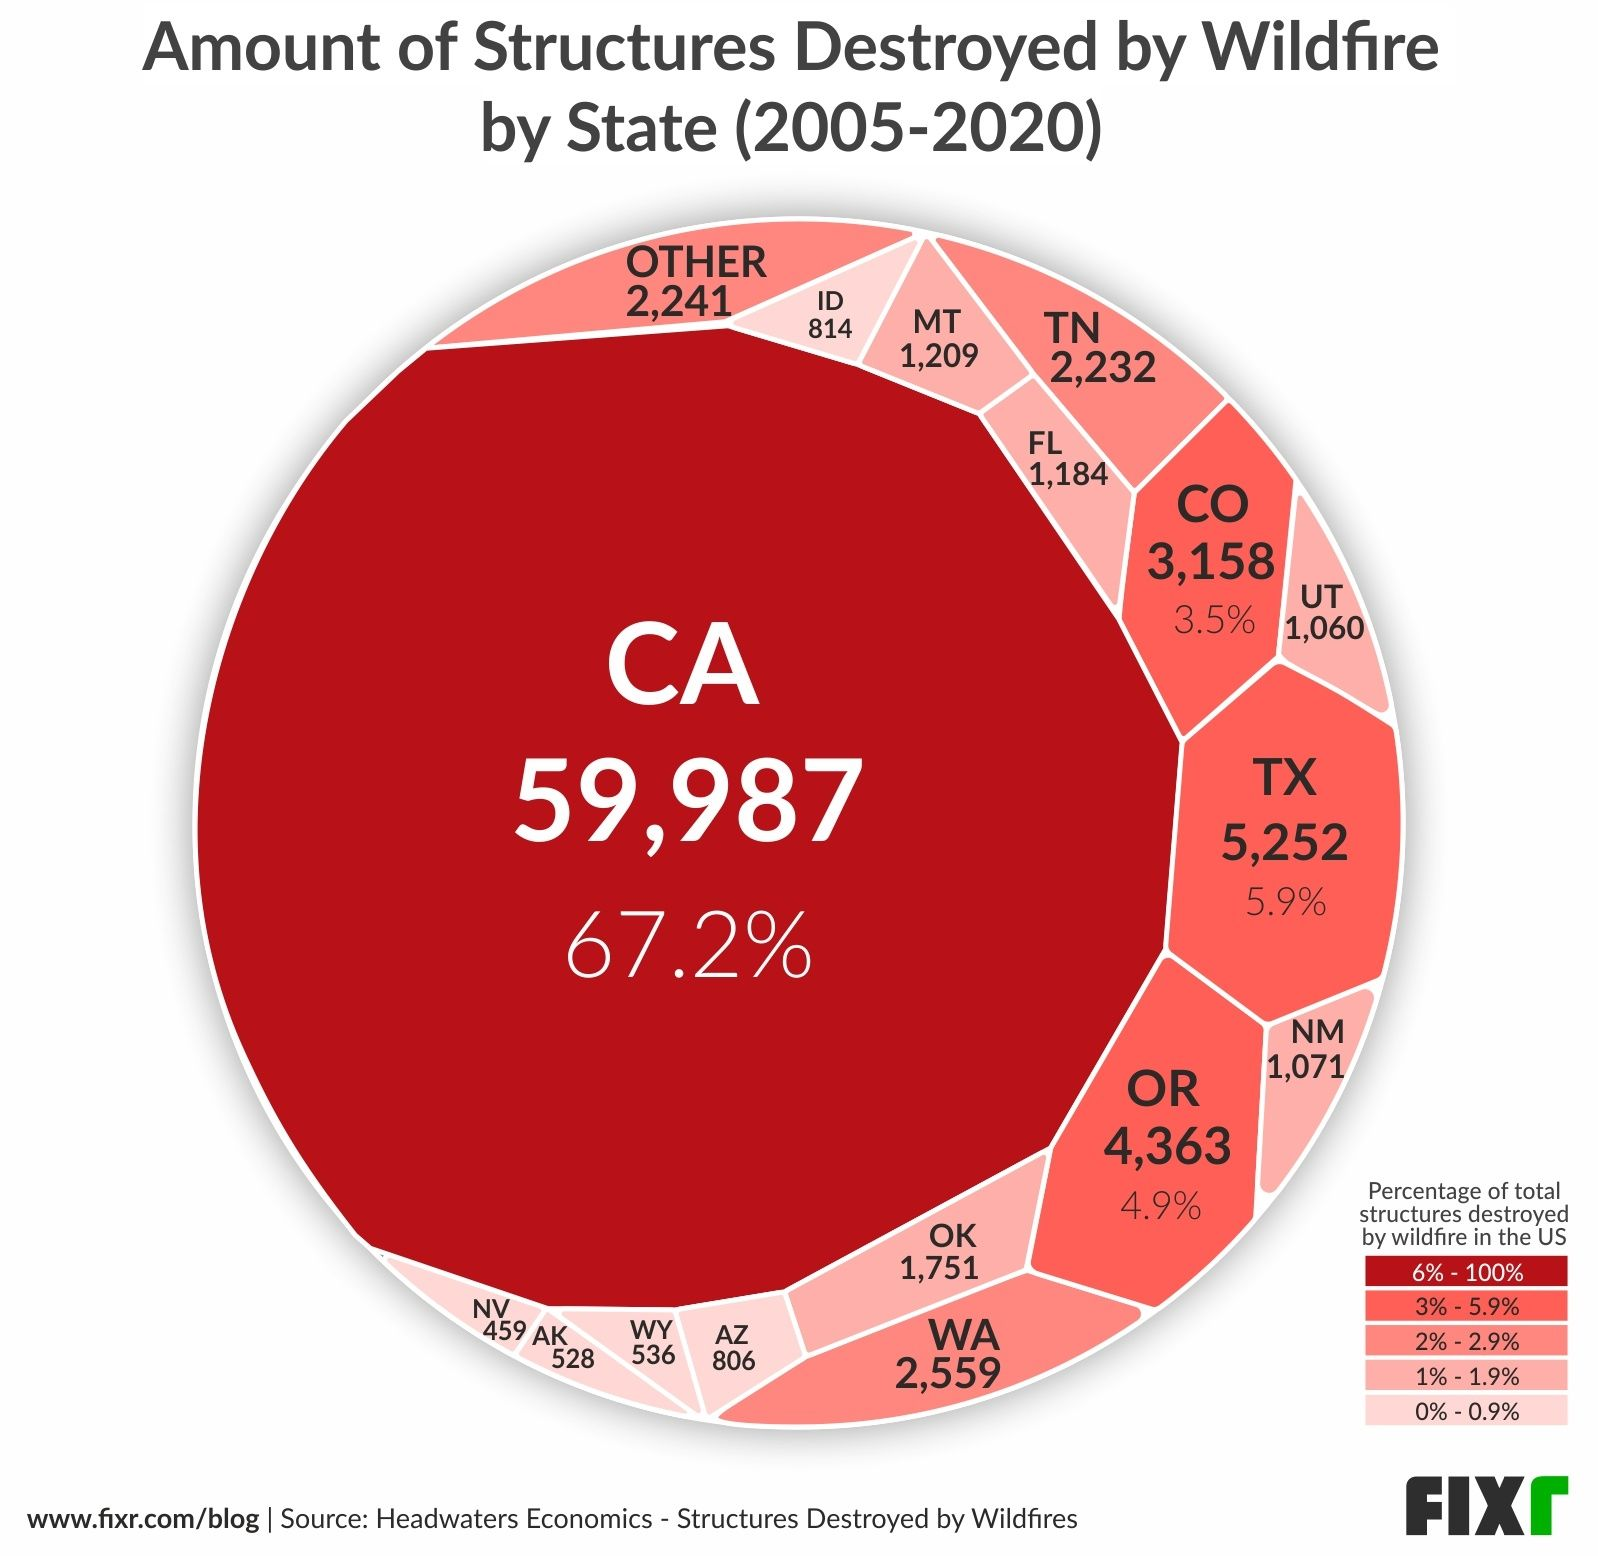 States with Most Structures Destroyed by Wildfire in the last 15 Years